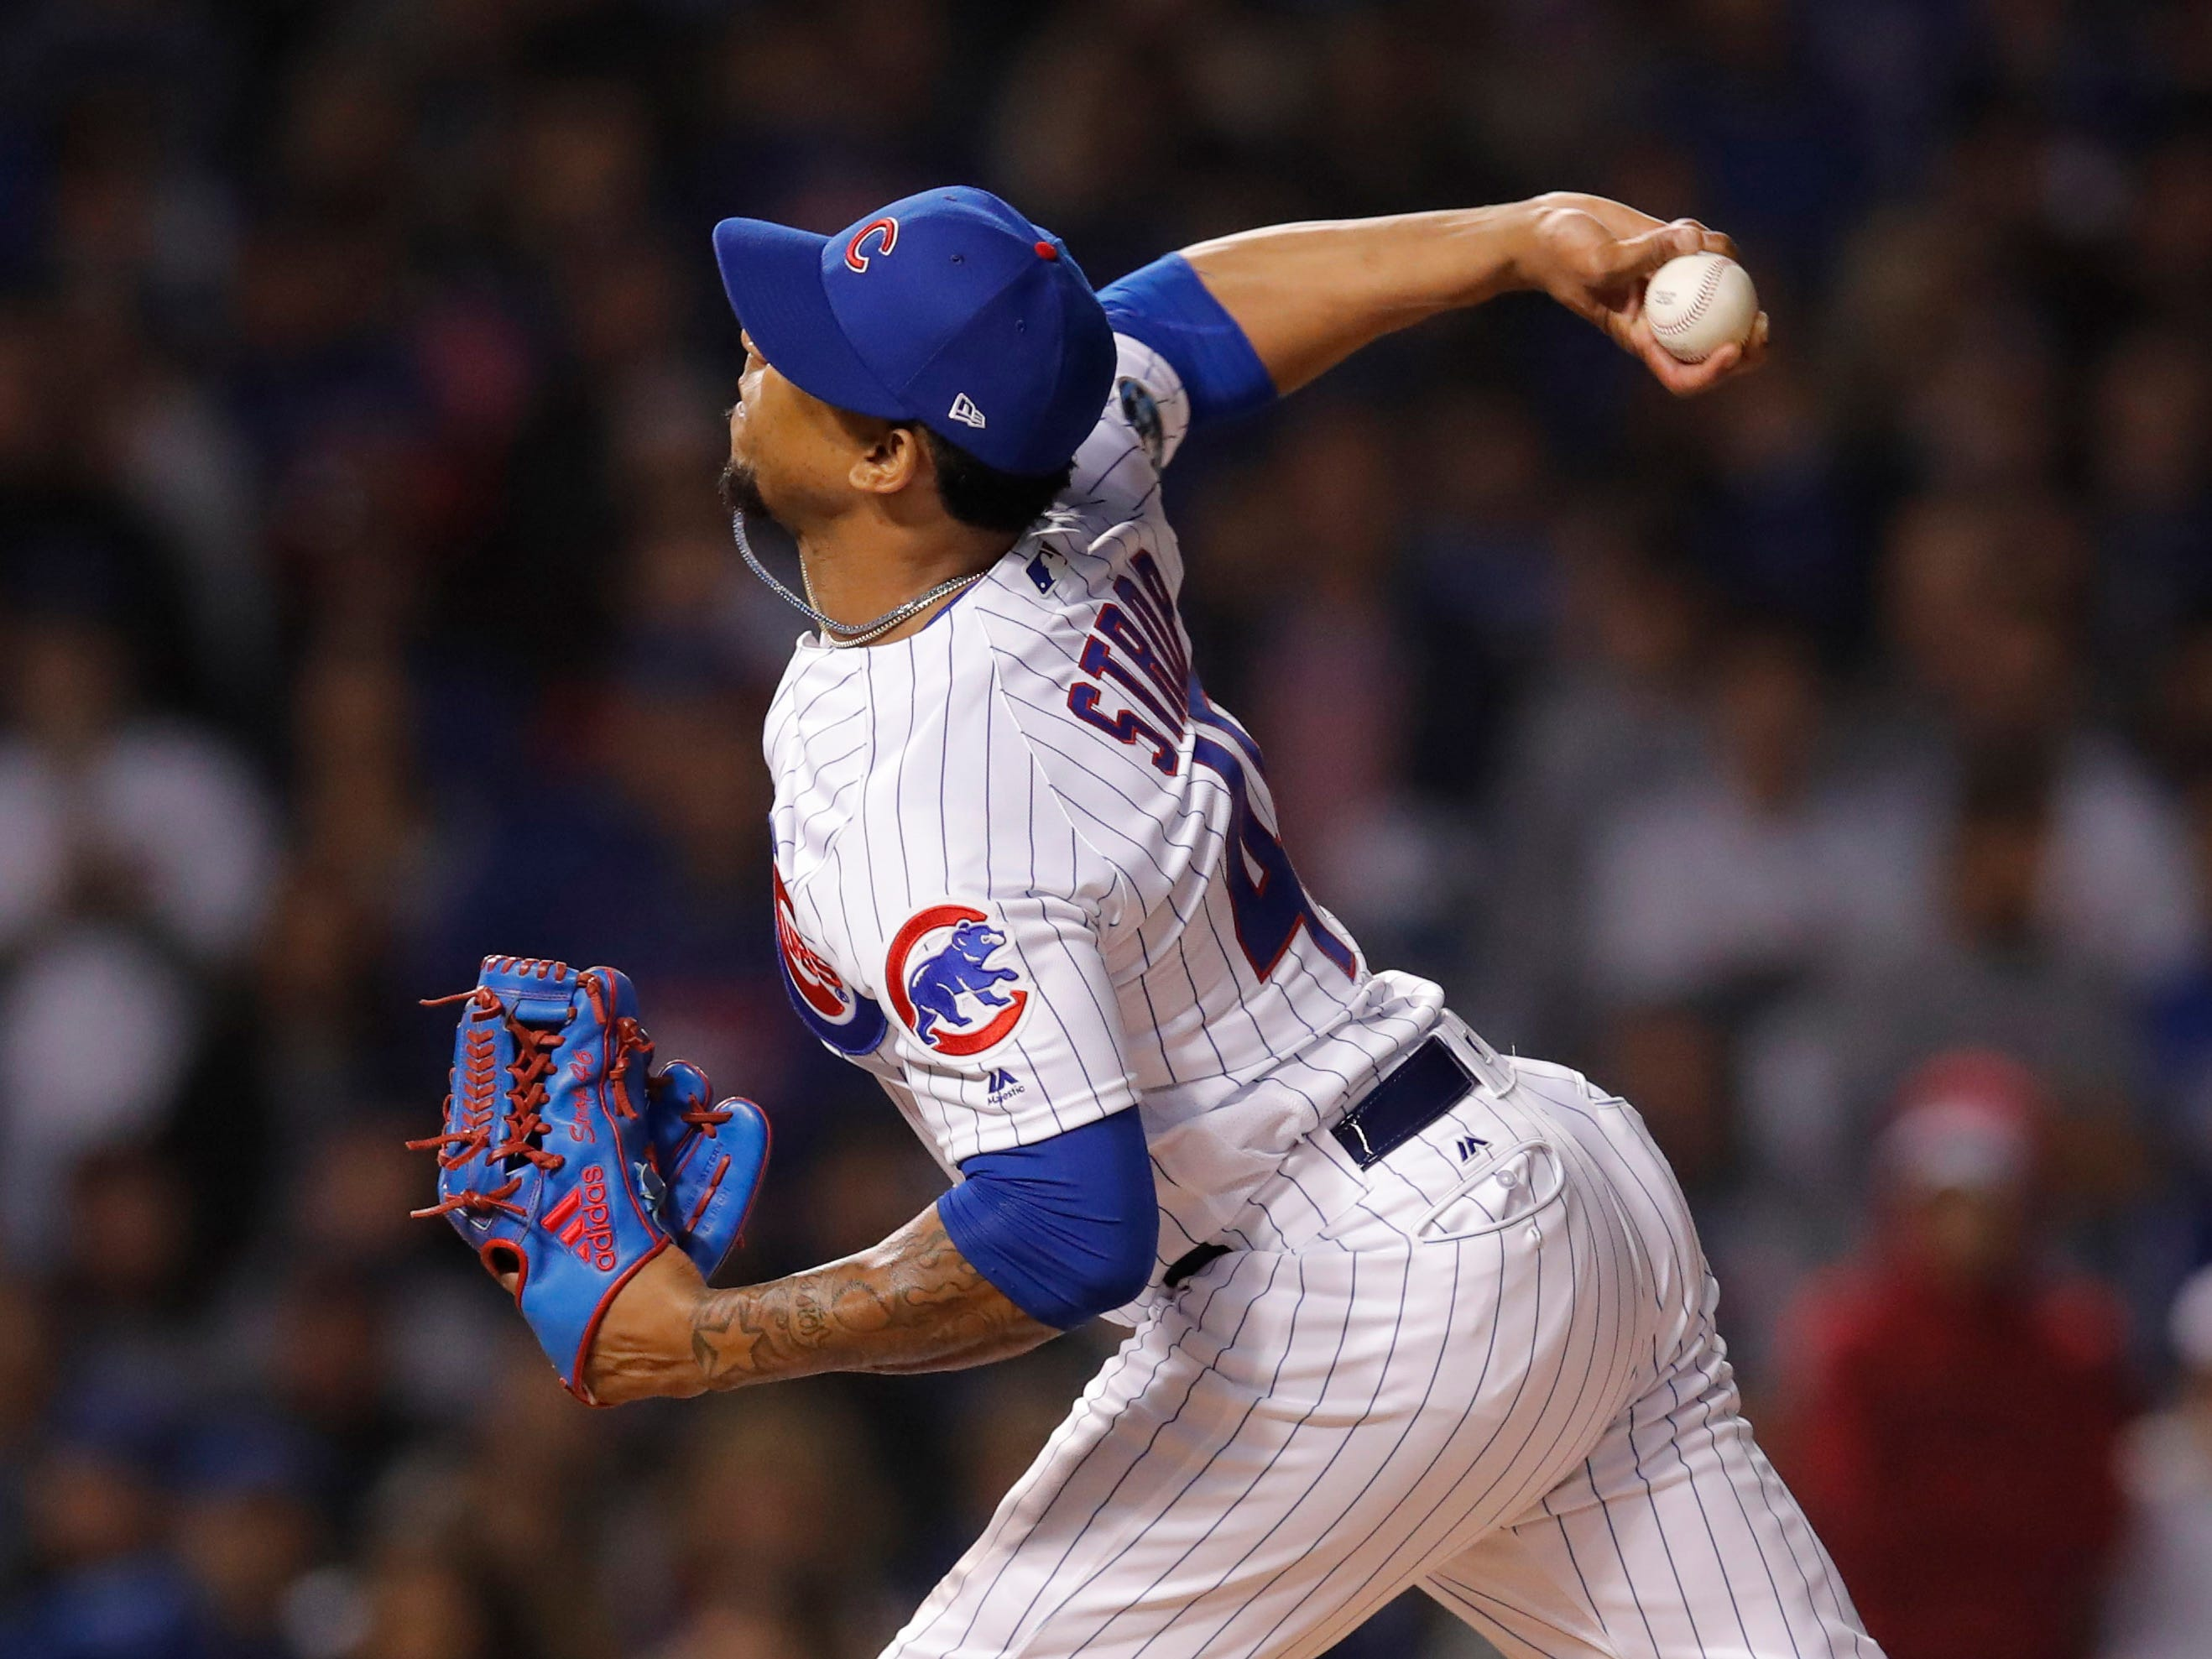 Oct 2, 2018; Chicago, IL, USA; Chicago Cubs relief pitcher Pedro Strop throws a pitch in the 9th inning against the Colorado Rockies in the 2018 National League wild card playoff baseball game at Wrigley Field.